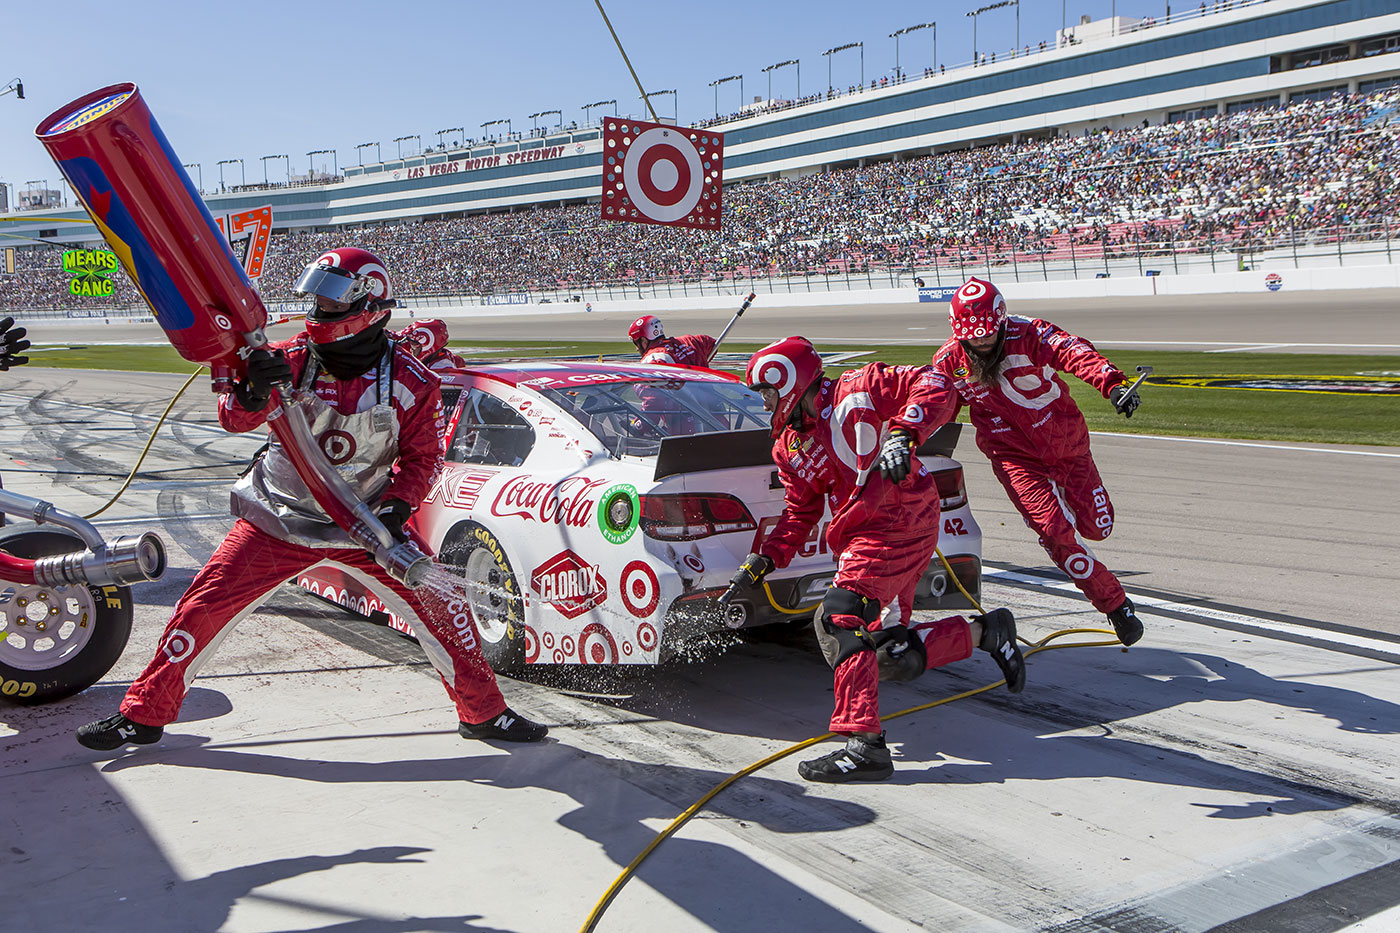 Nascar and Agile are more alike than you think